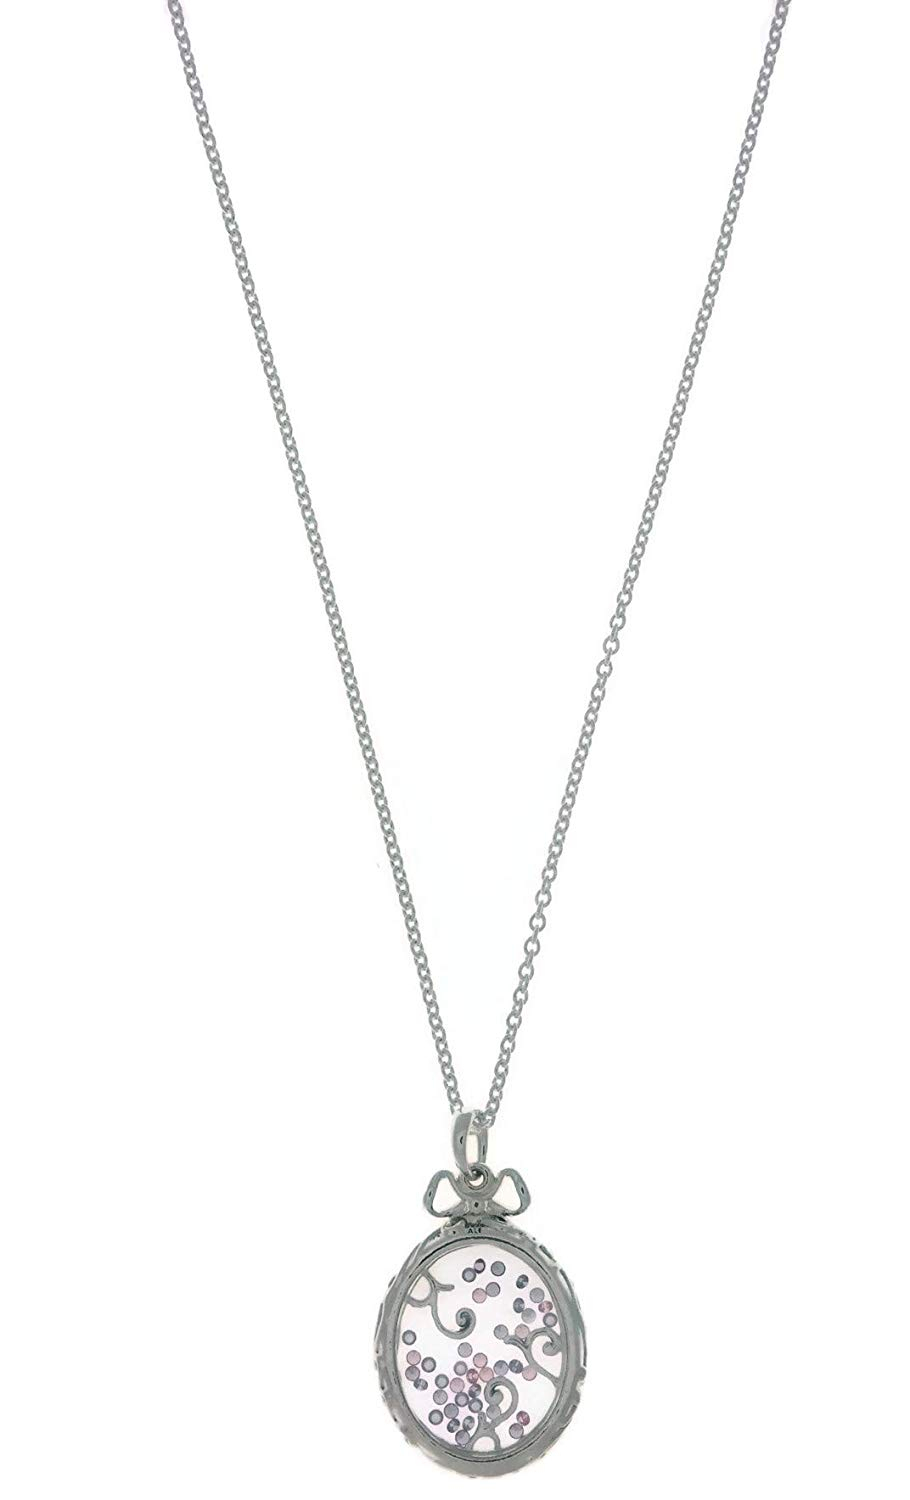 Pandora Necklace Locket : Shop Pandora Charms, Rings, Earrings Throughout Most Recently Released Pandora Lockets Crown O Necklaces (View 12 of 25)